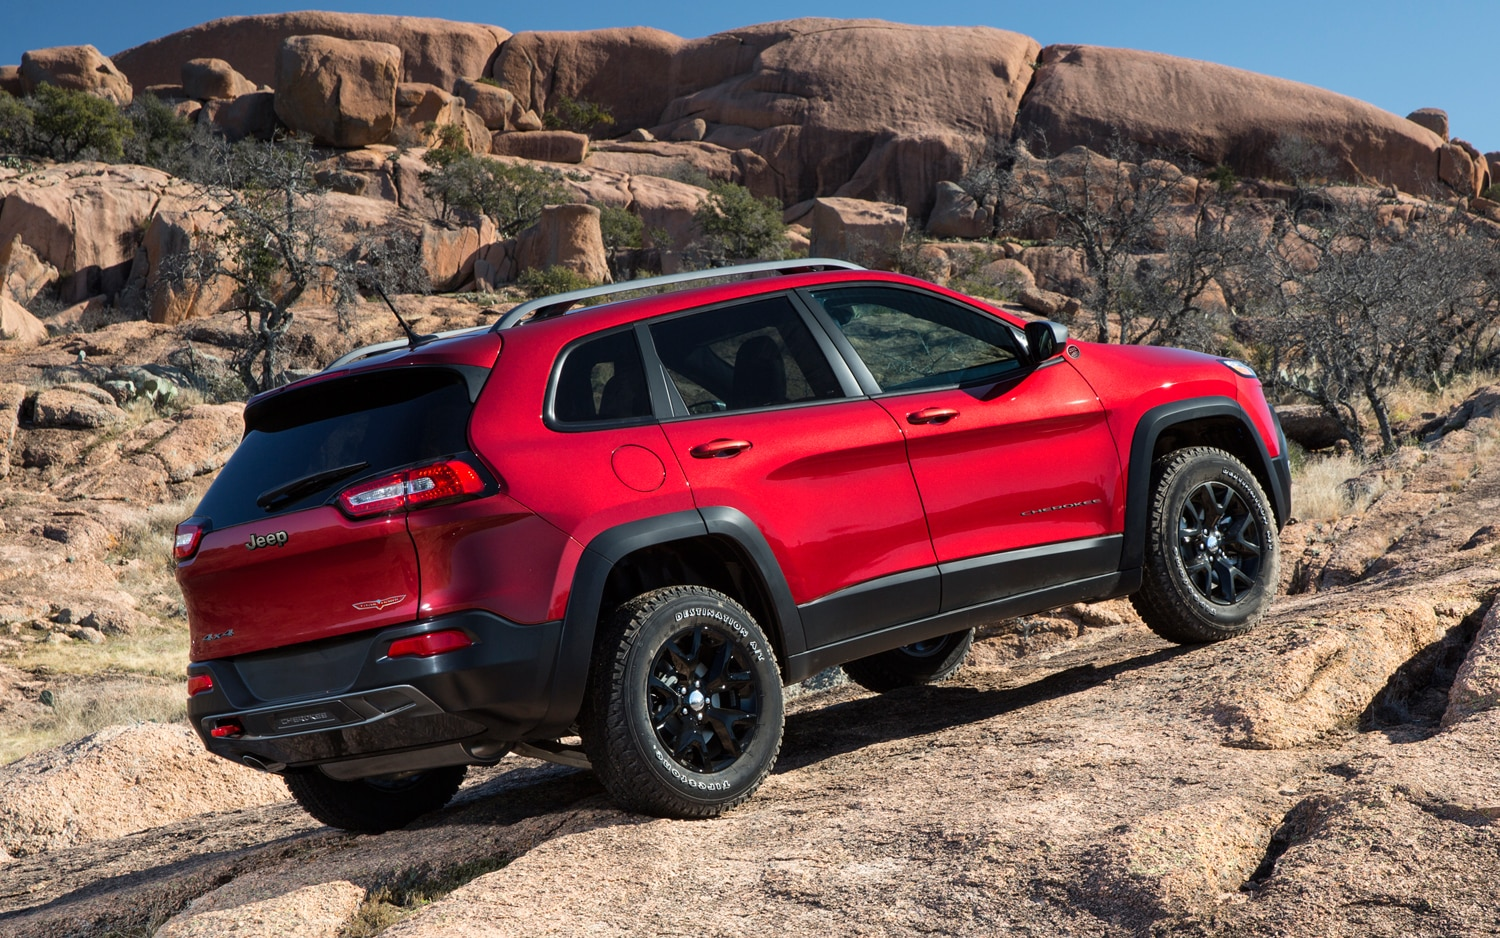 2014 Jeep Cherokee Trailhawk rear three quarters 02